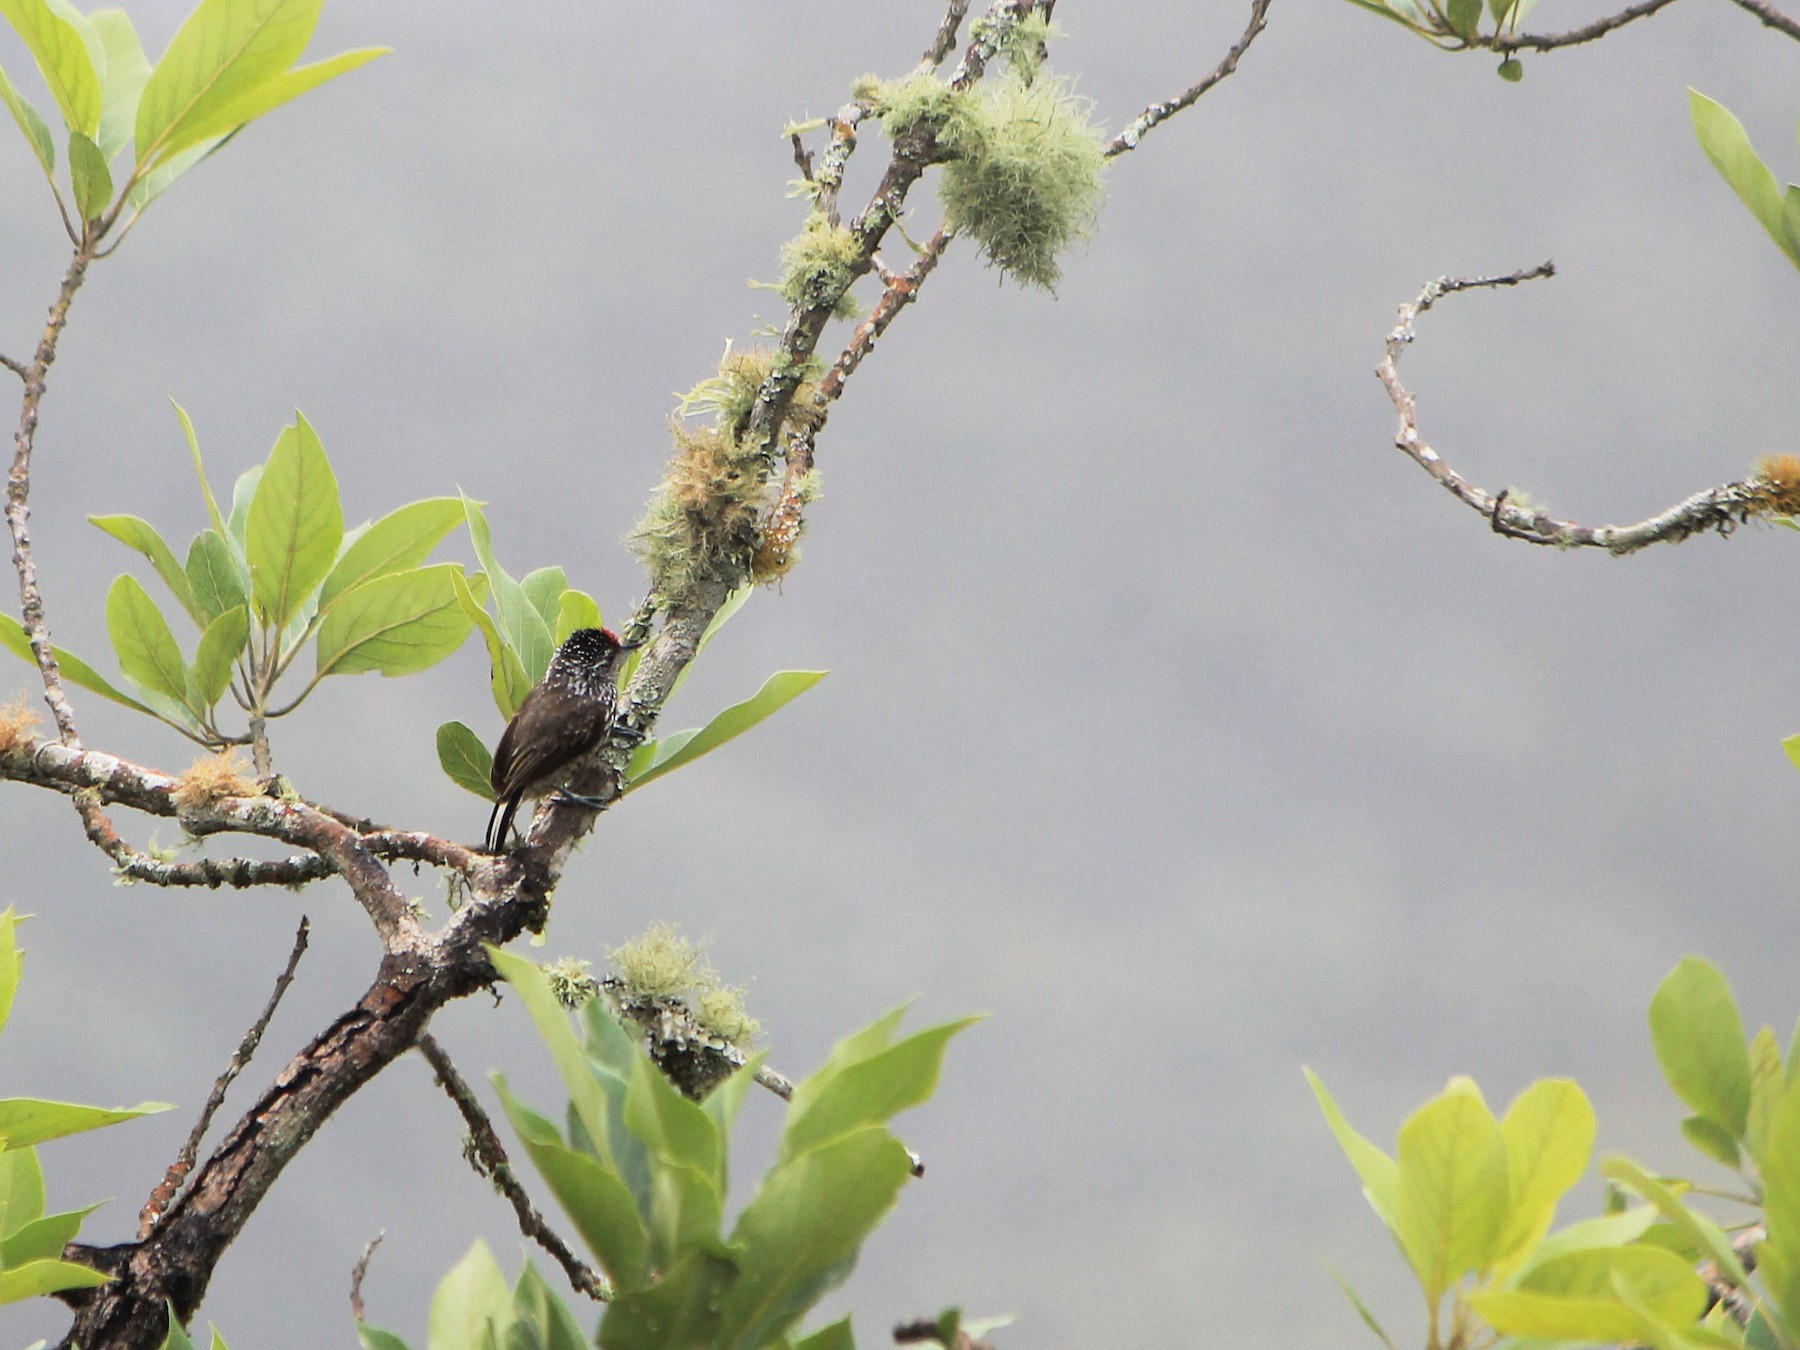 Ocellated Piculet - Meghan Edwards